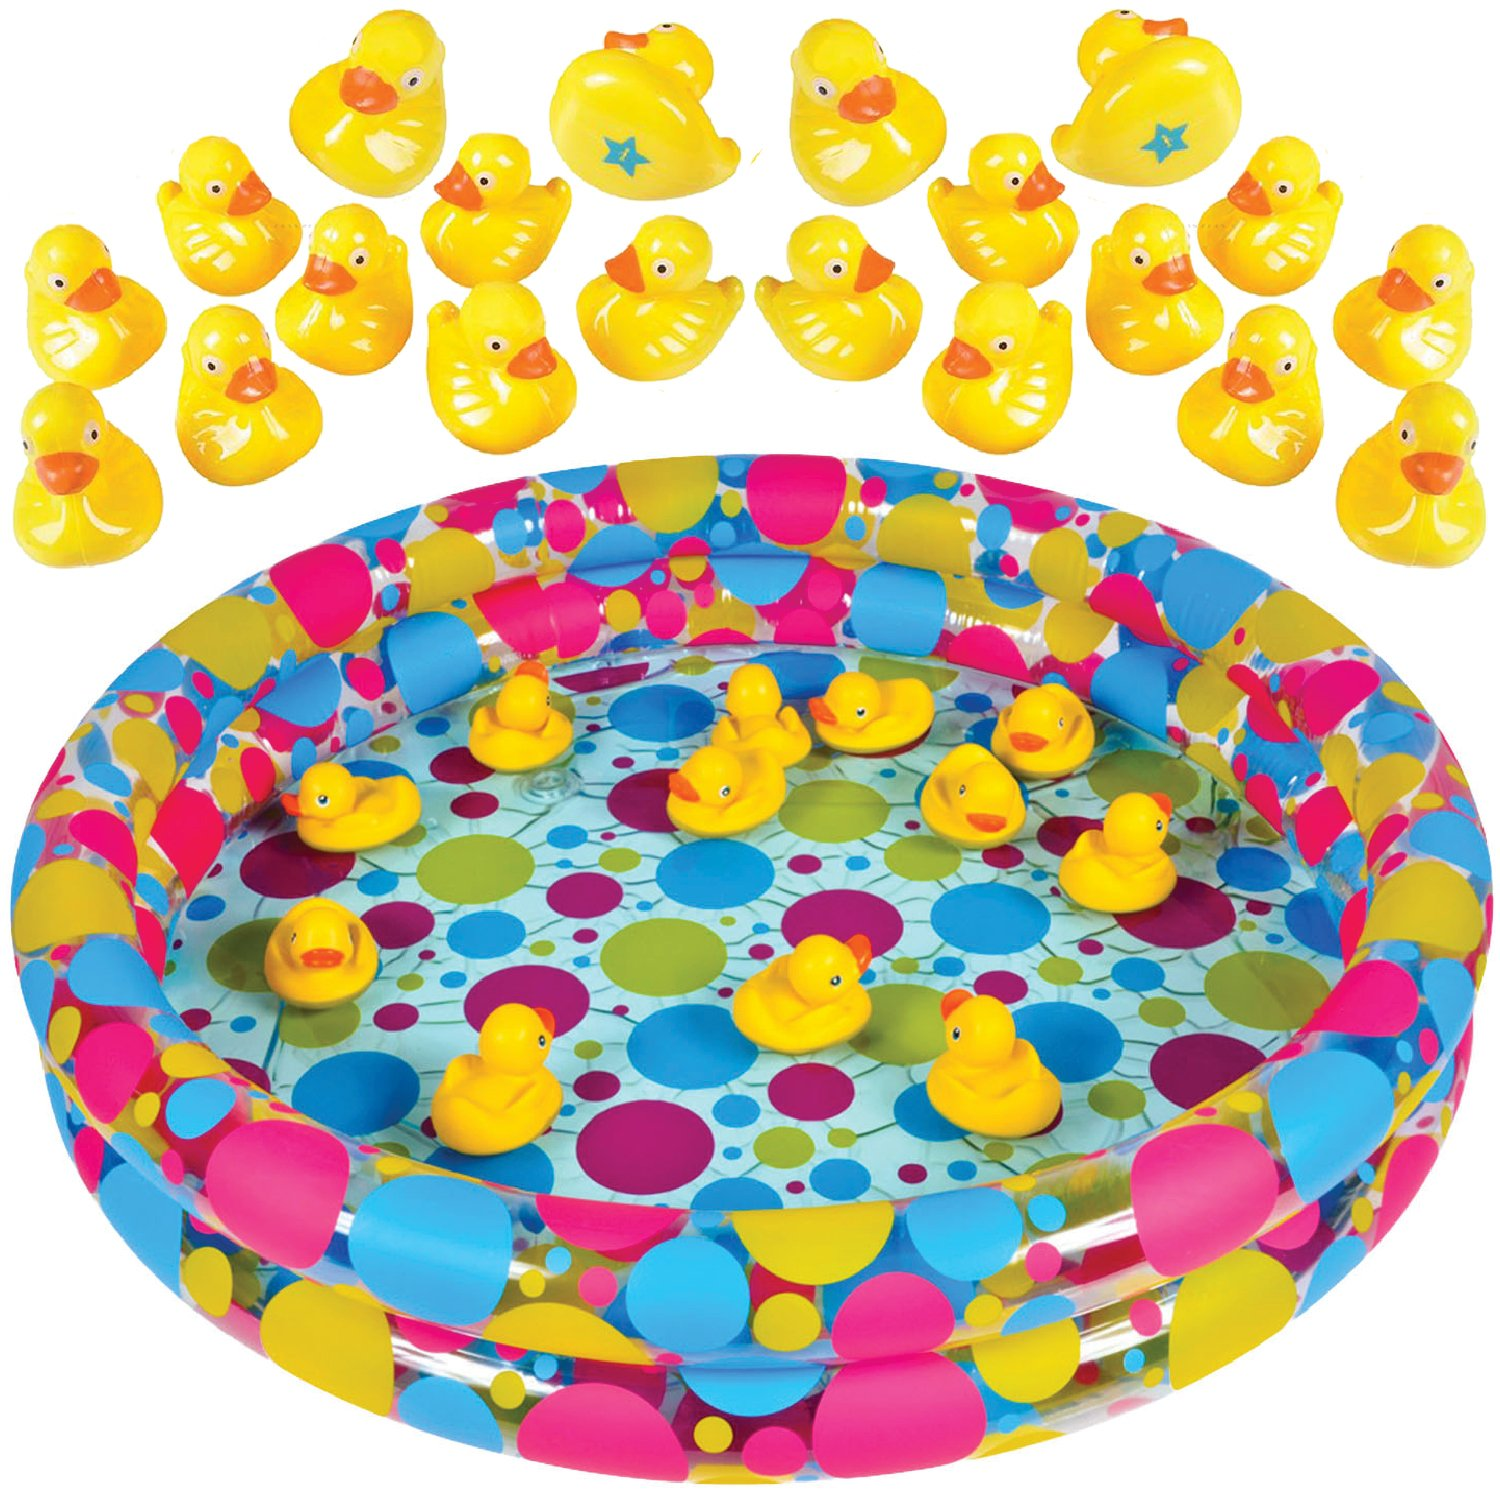 """Duck Pond Matching Game for kids by GAMIE - Includes 20 Plastic Ducks with number & shapes And 3' x 6"""" Inflatable Pool - Fun Memory Game - Water Outdoor Game for Children, Preschoolers, Birthday Party"""